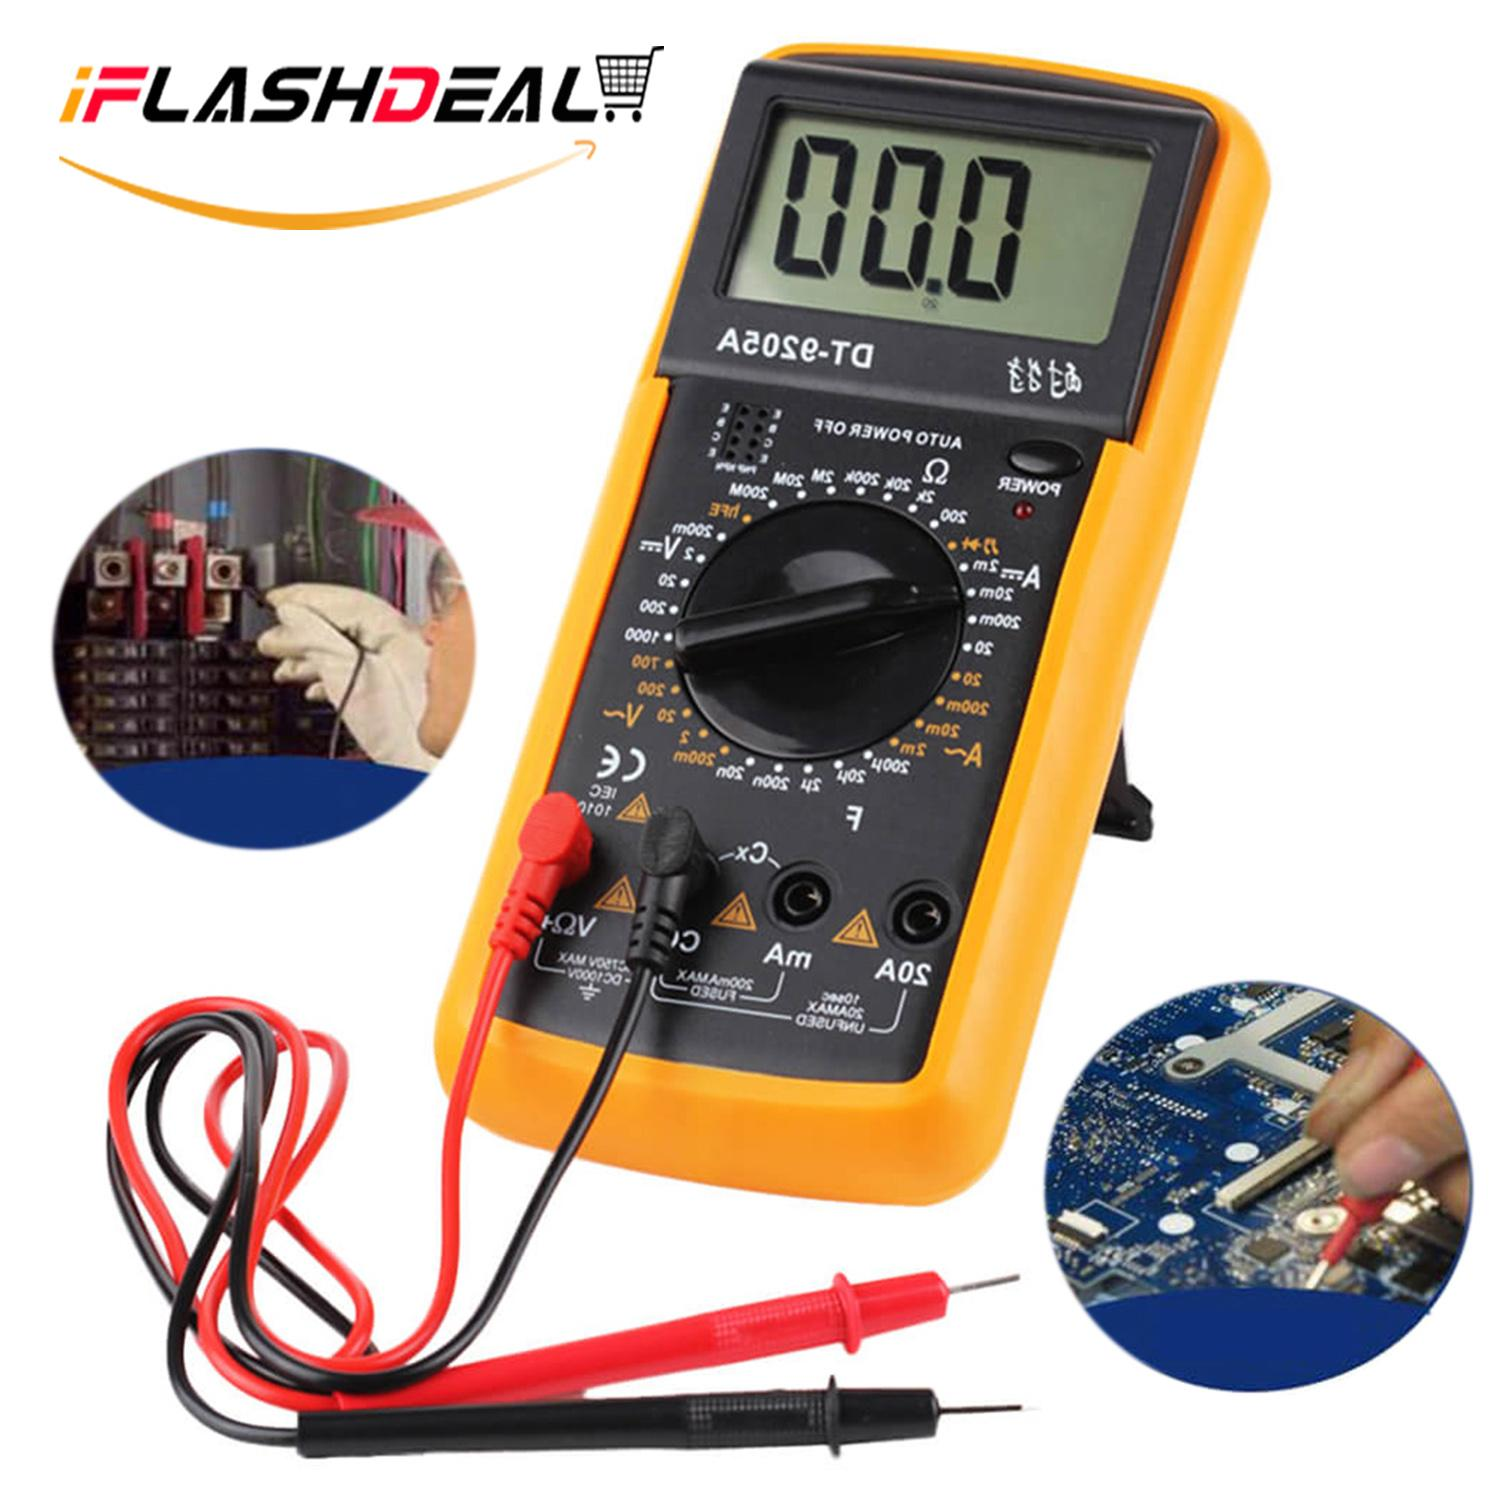 iFlashDeal Digital Multimeter Volt Tester with LCD Backlight Display